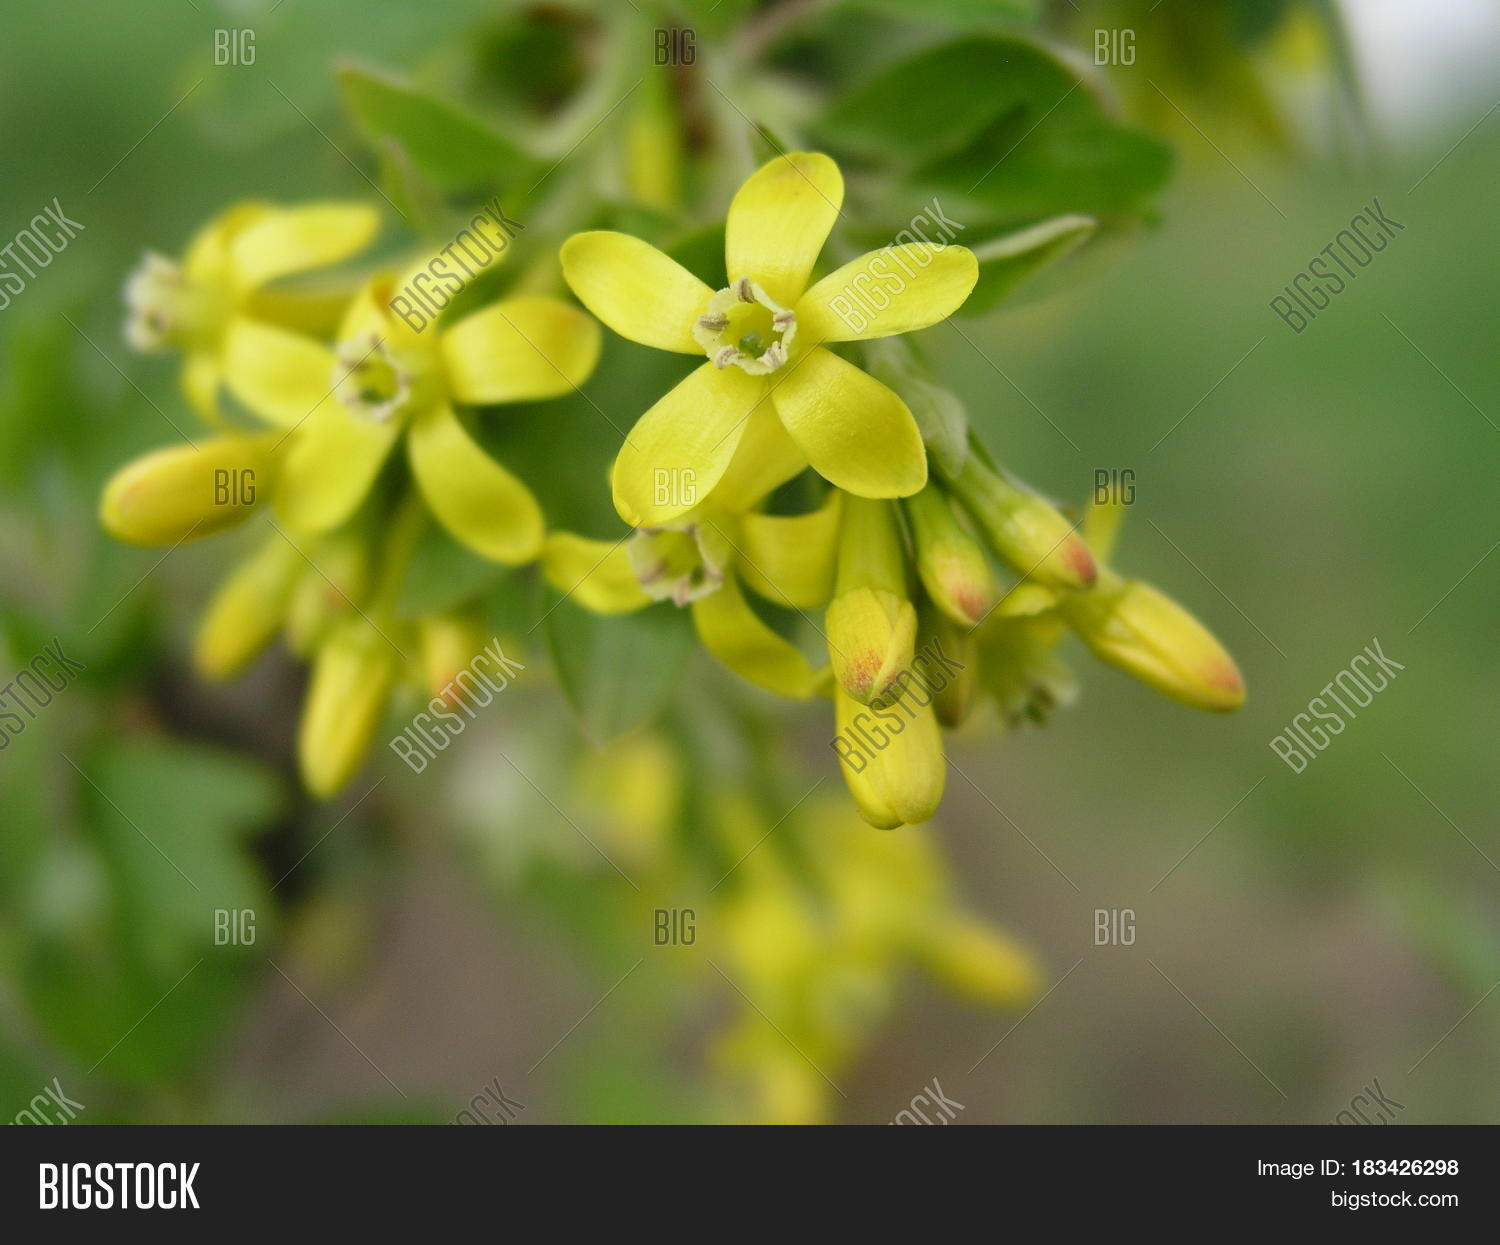 Yellow Currant Clove Image Photo Free Trial Bigstock